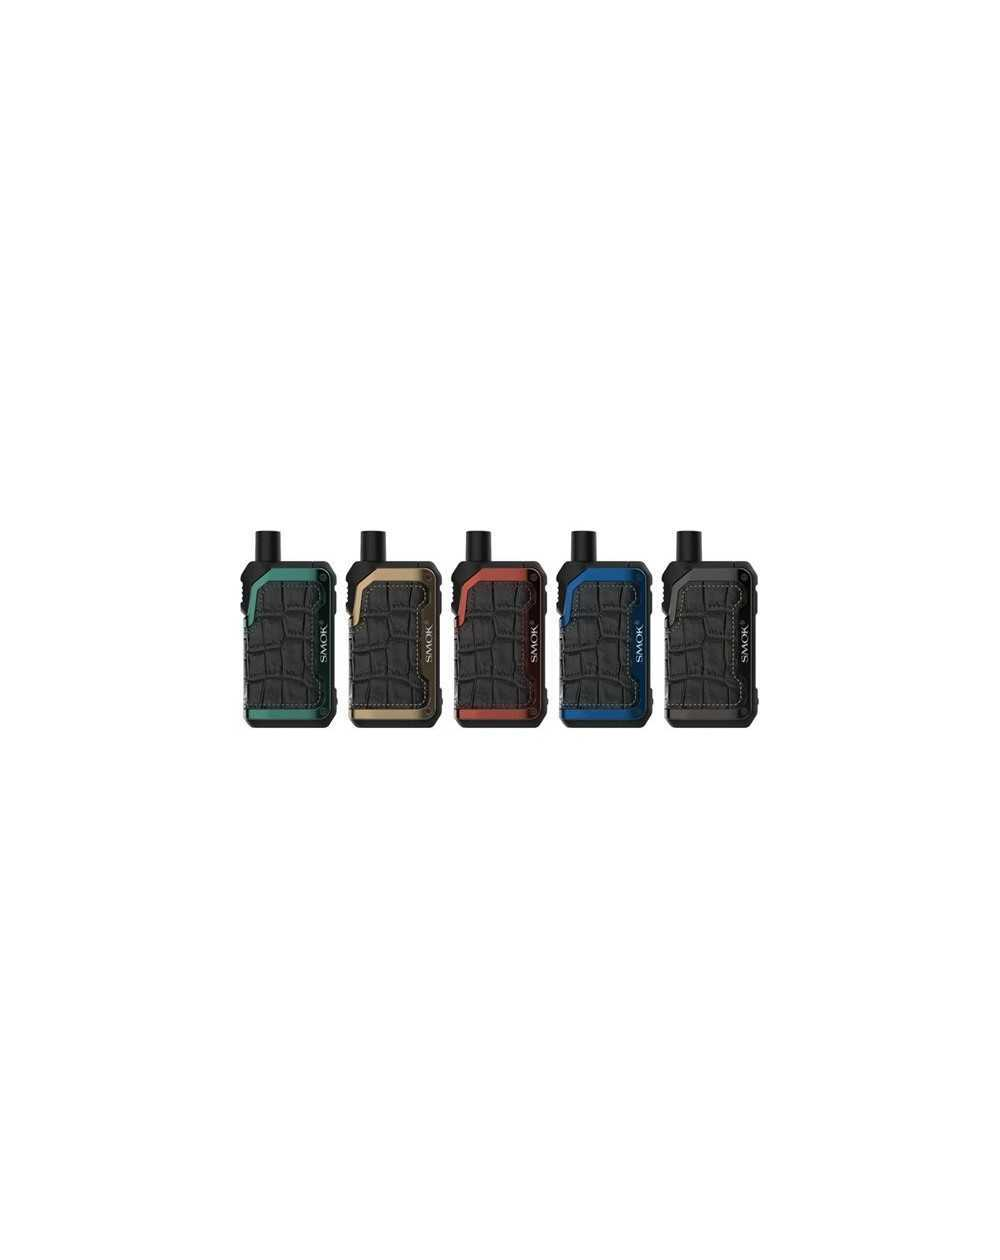 Kit Alike - Smoktech-1